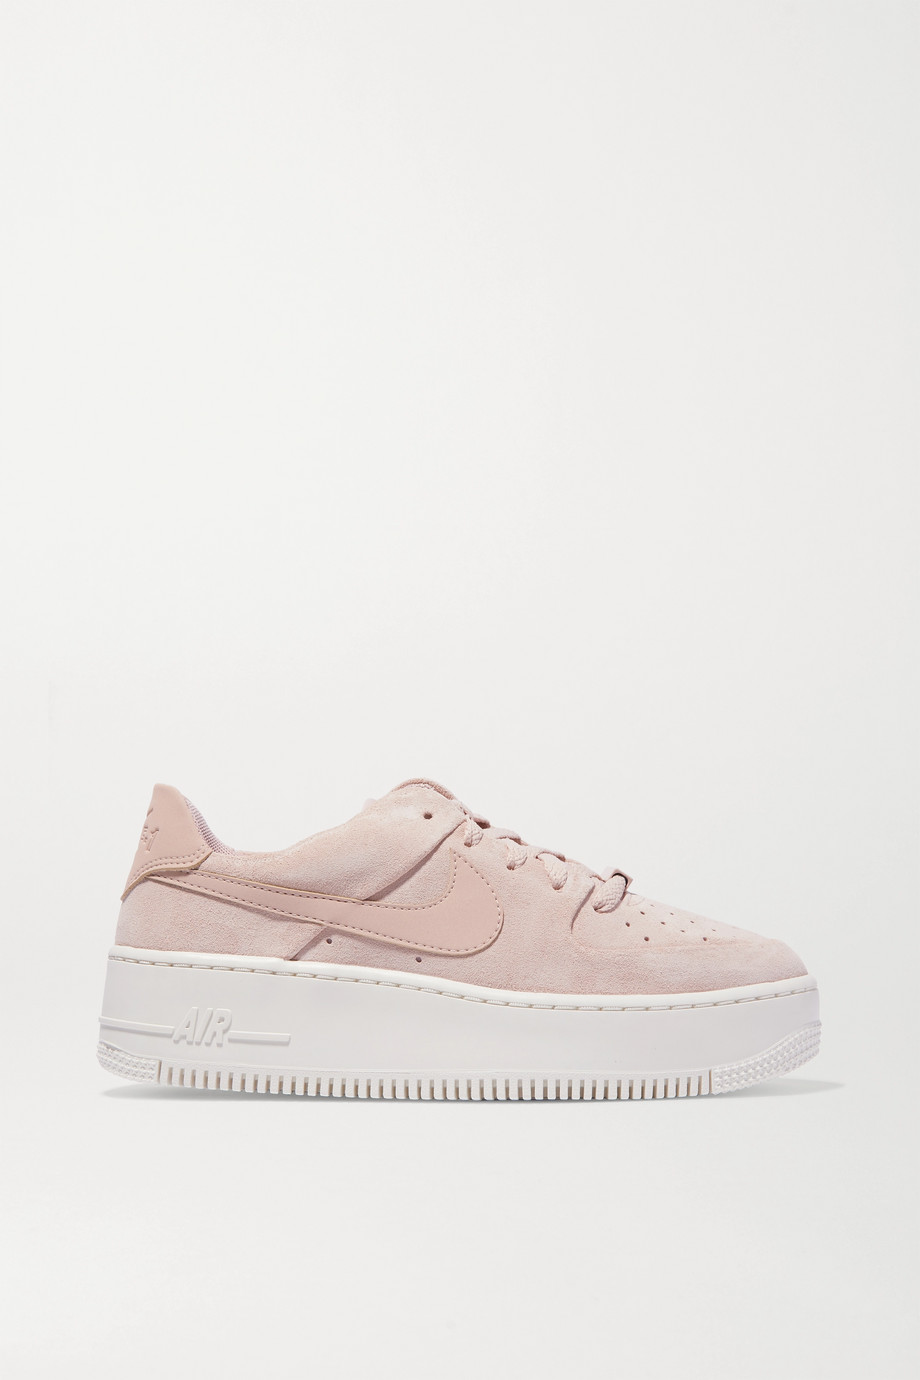 air force 1 khaki suede